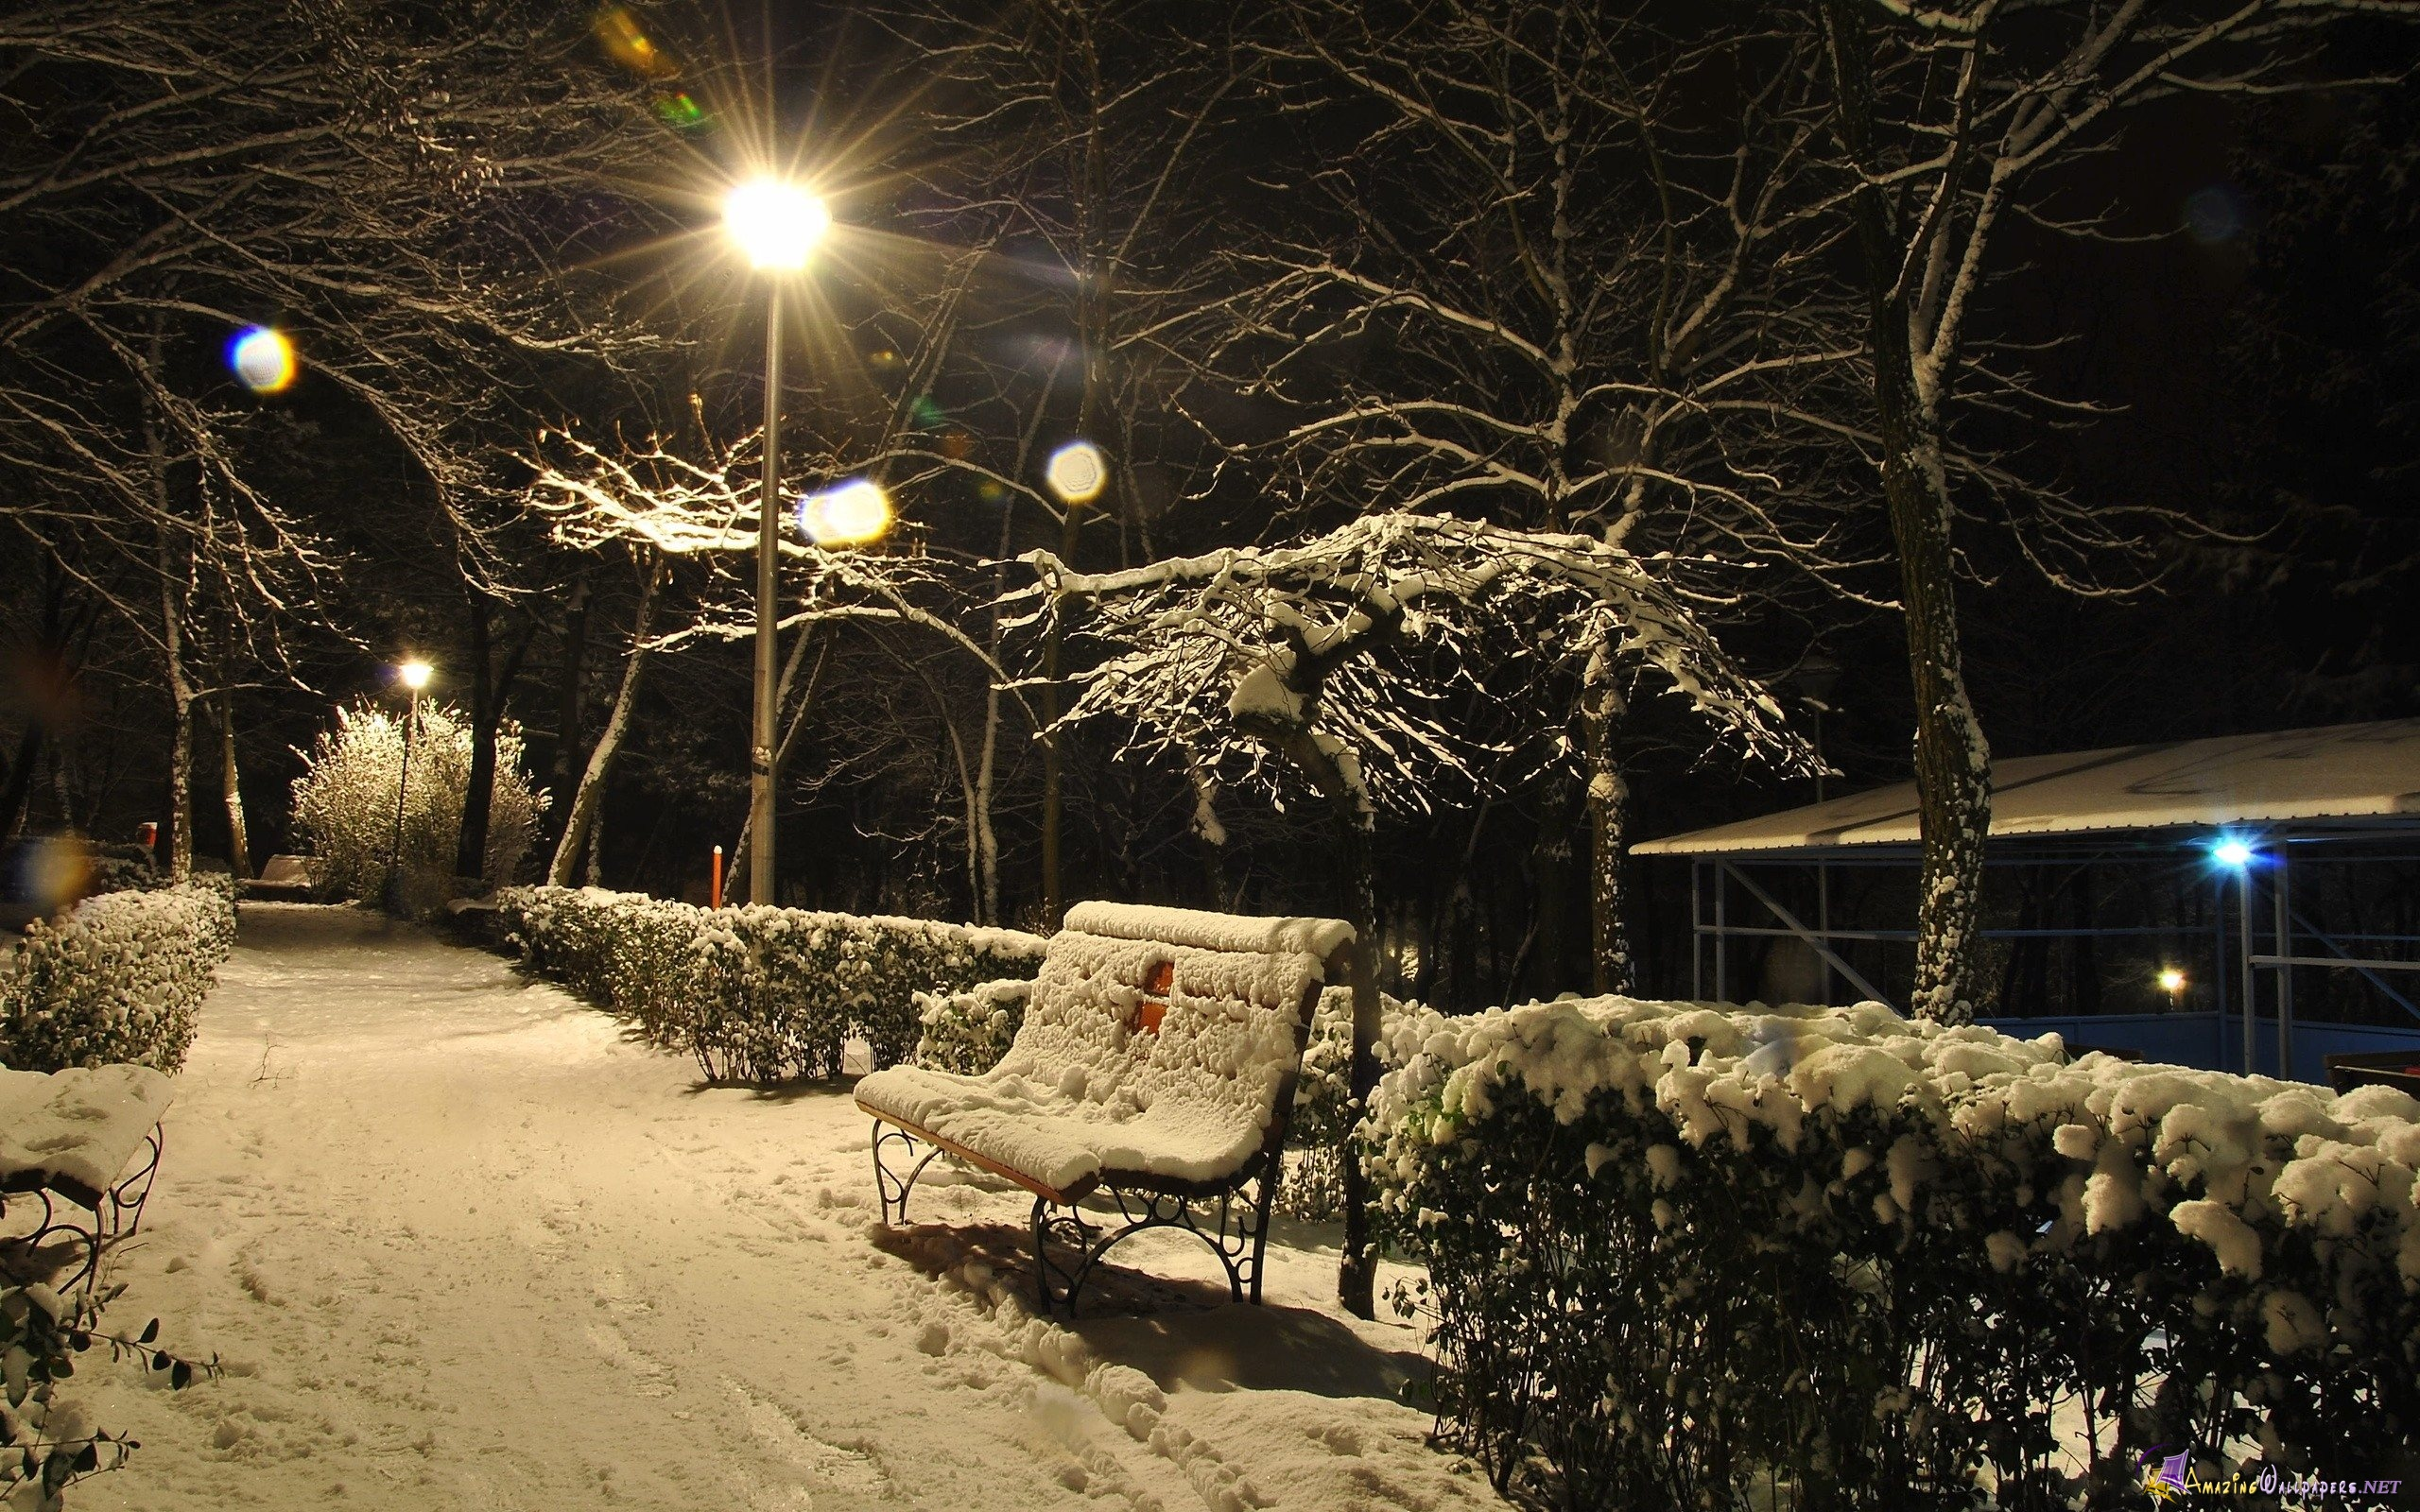 amazing night winter picture light views hd images